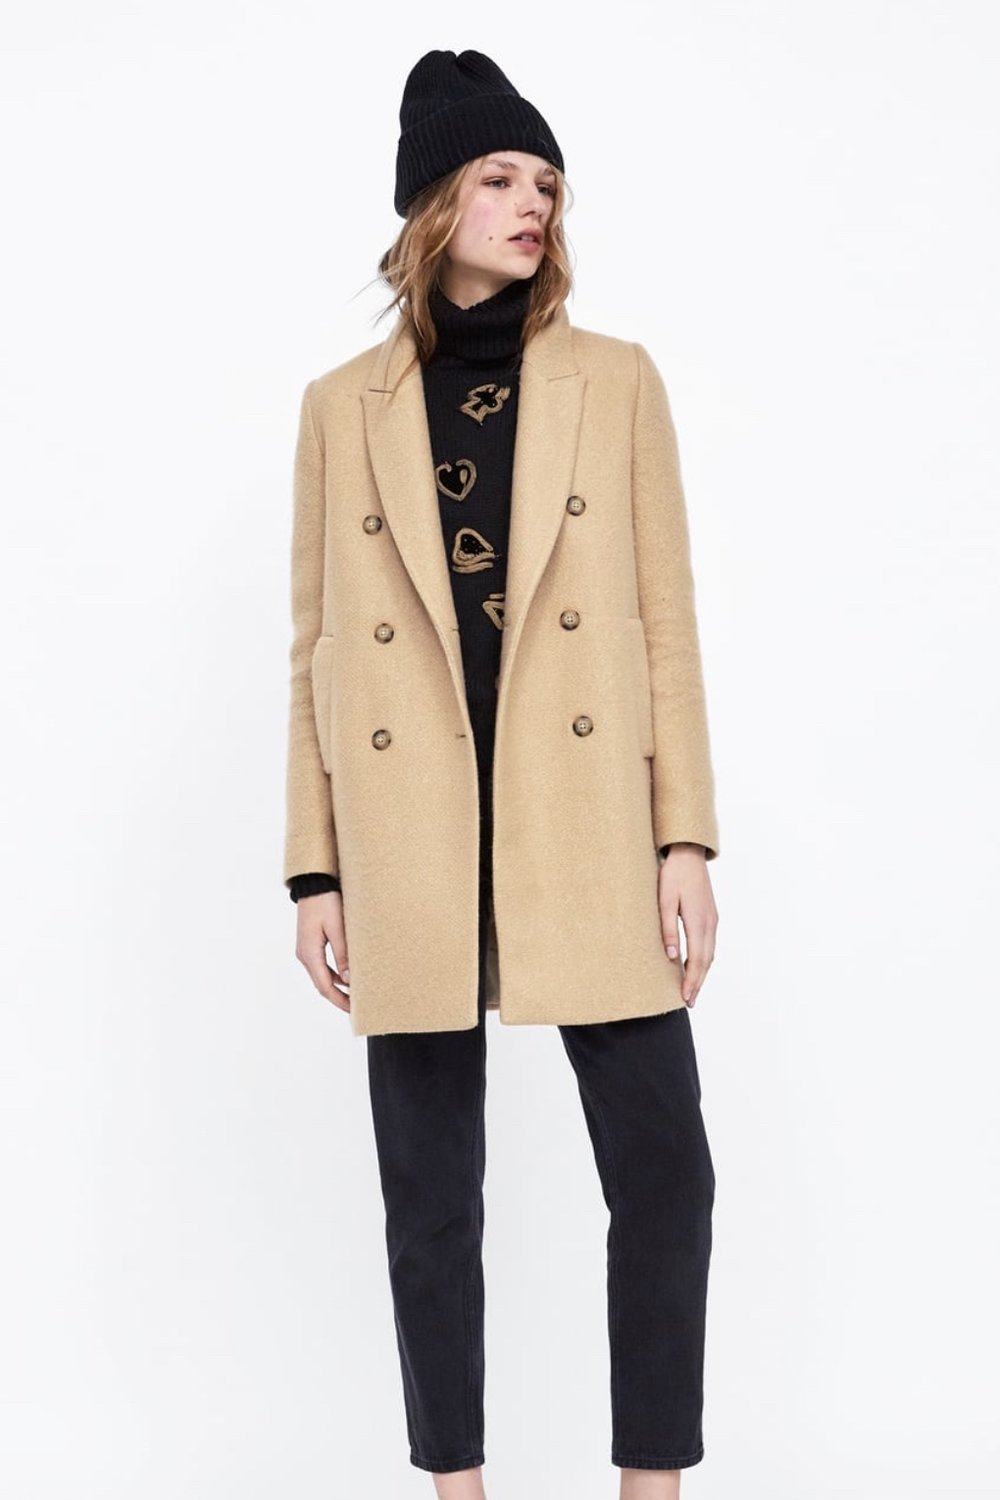 ^ Finish with a classic camel coat :)